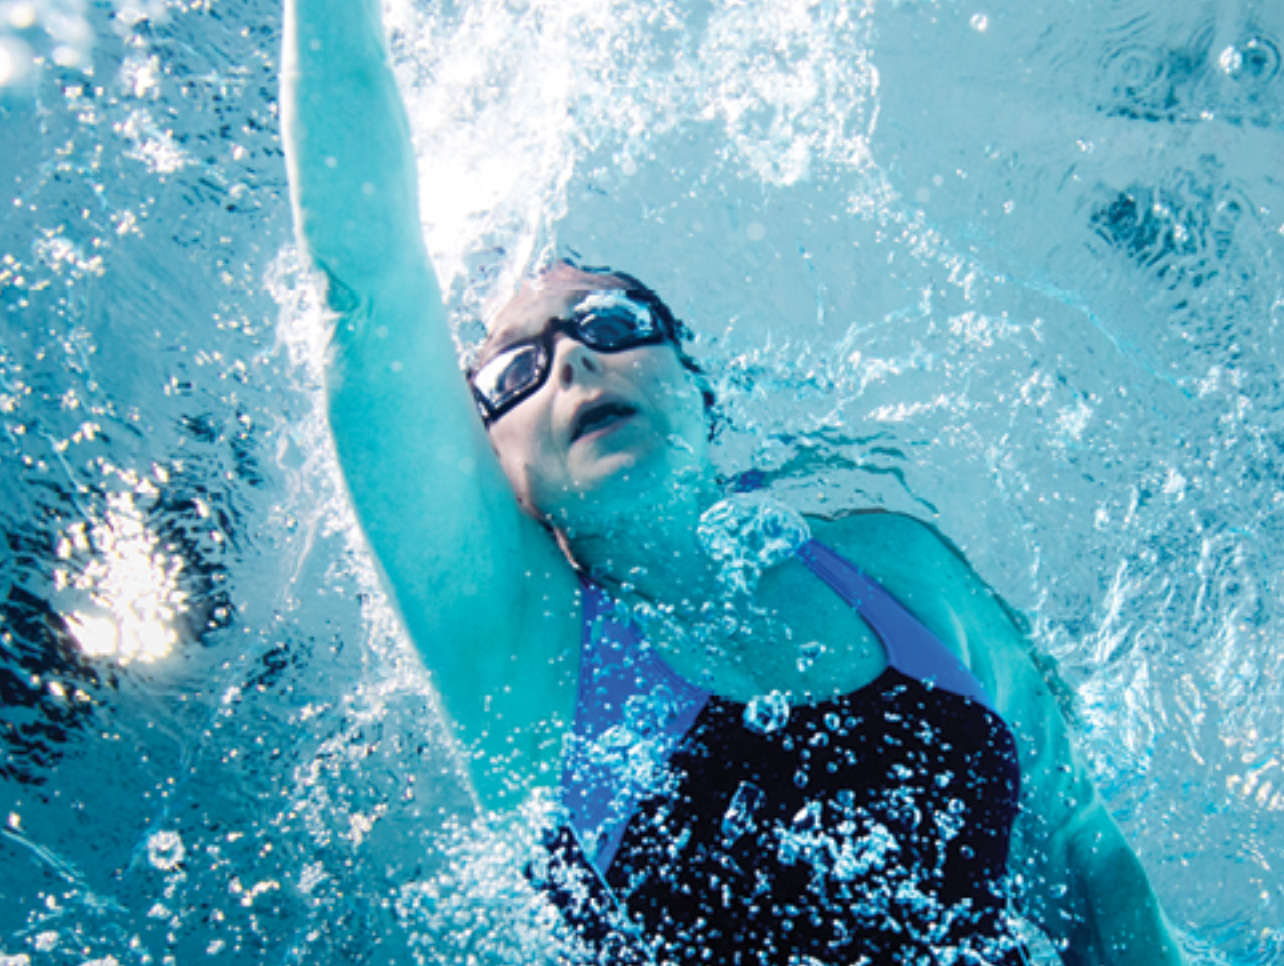 Something threatened this swimmer's athletic lifestyle when she developed an irregular beat in the upper chambers of her heart.